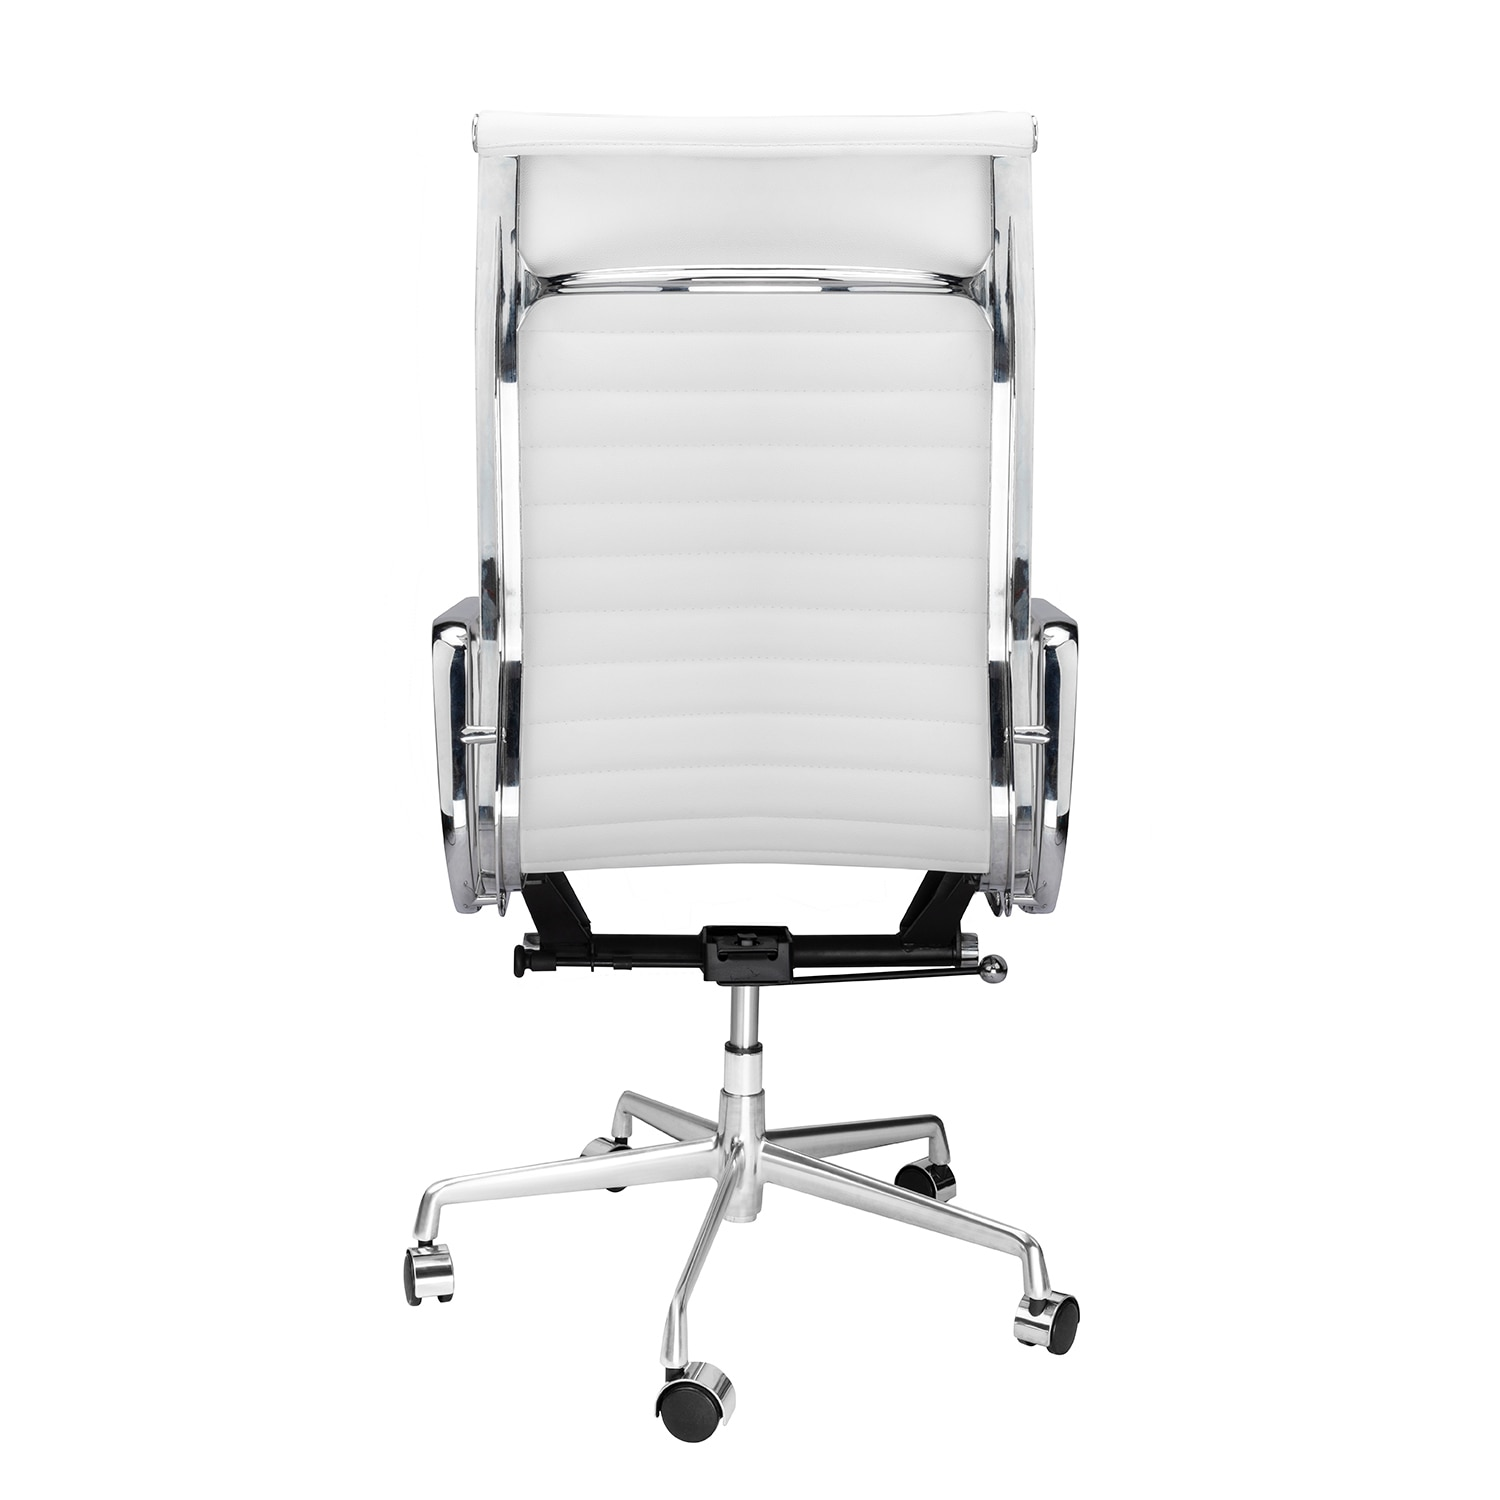 H79817cfb86884723b0db43ea830c18a1t - High Back Aluminium Group Office Chair Replica Swivel Chair with Armrests Chromed Base Gaming Chair for Office Meeting Room